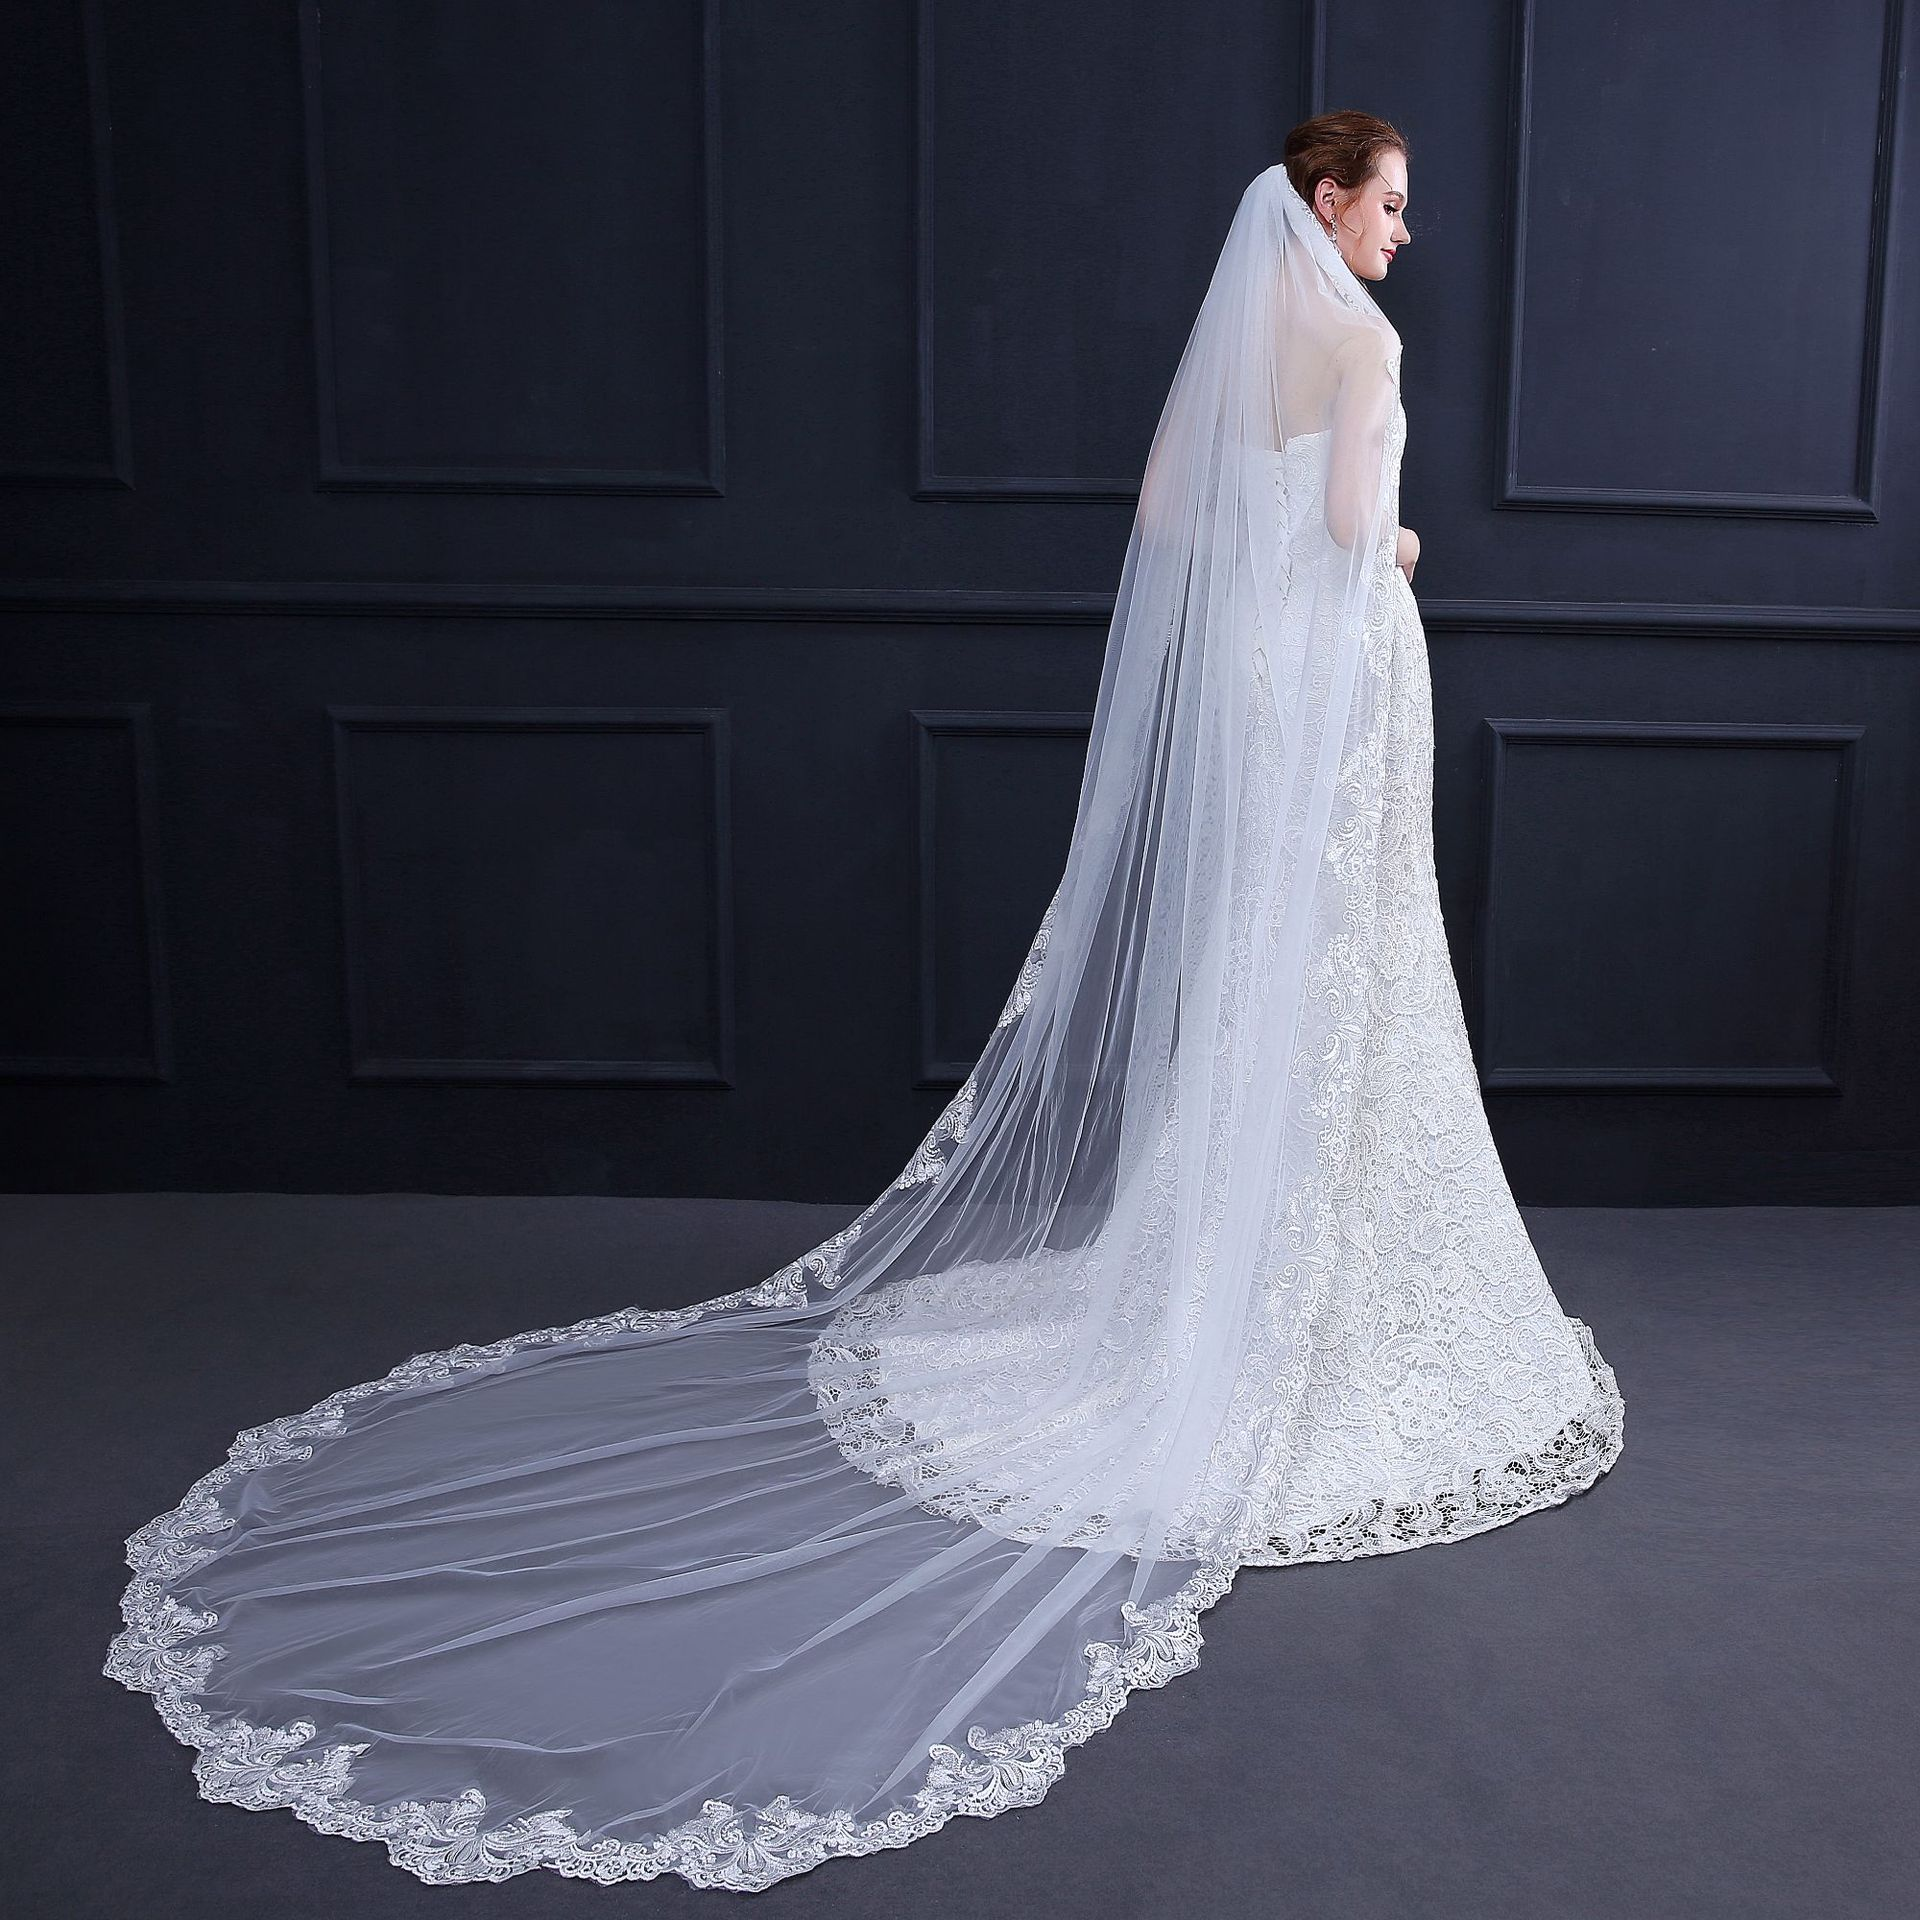 2018 New Bridal Veil 3m Long Cathedral Veil Ivory Wedding Veil 3M With Comb  Lace Beads Mantilla Wedding Accessories EE18013